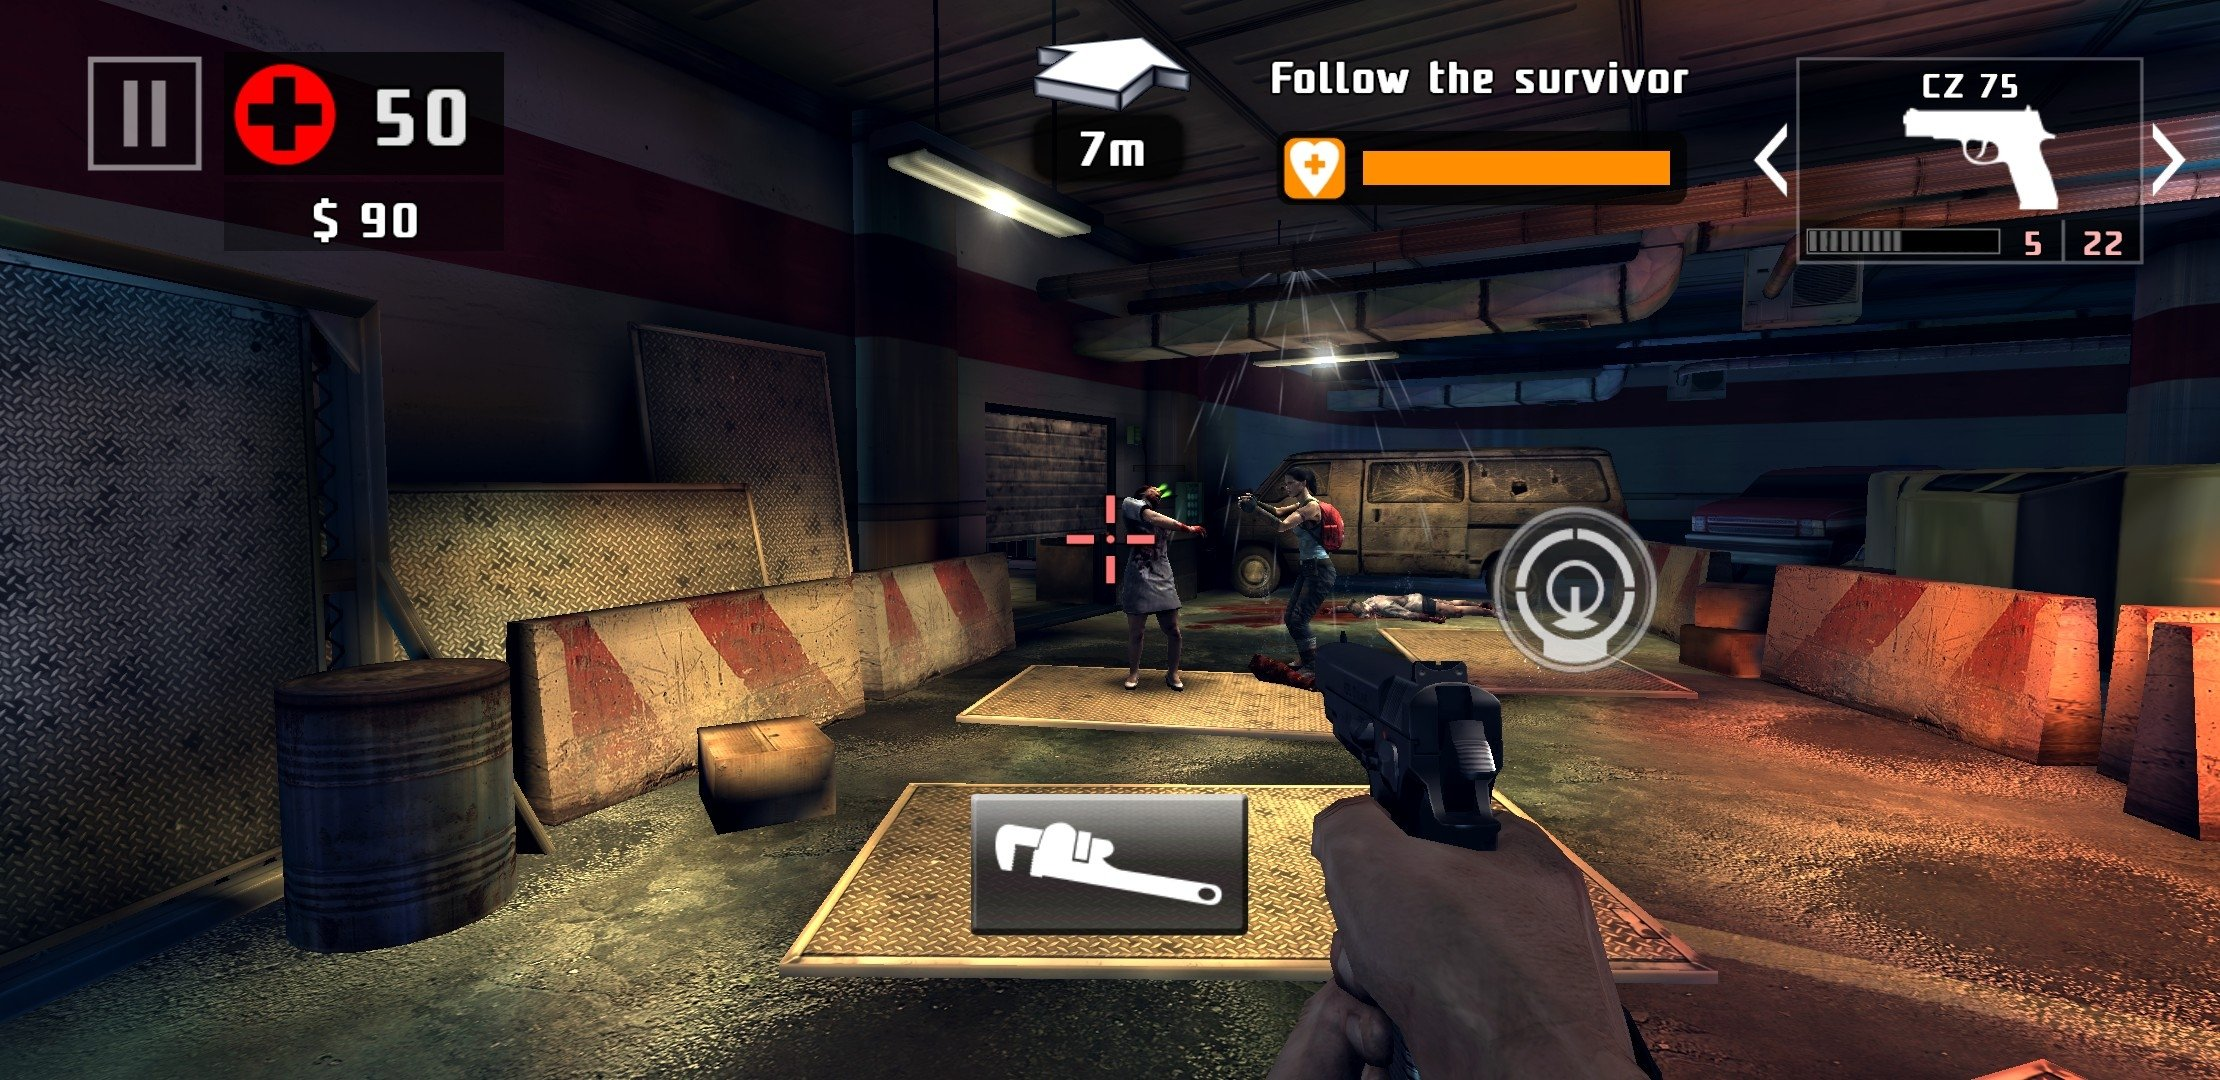 Windows Fall Wallpaper Dead Trigger 2 1 3 3 Download For Android Apk Free